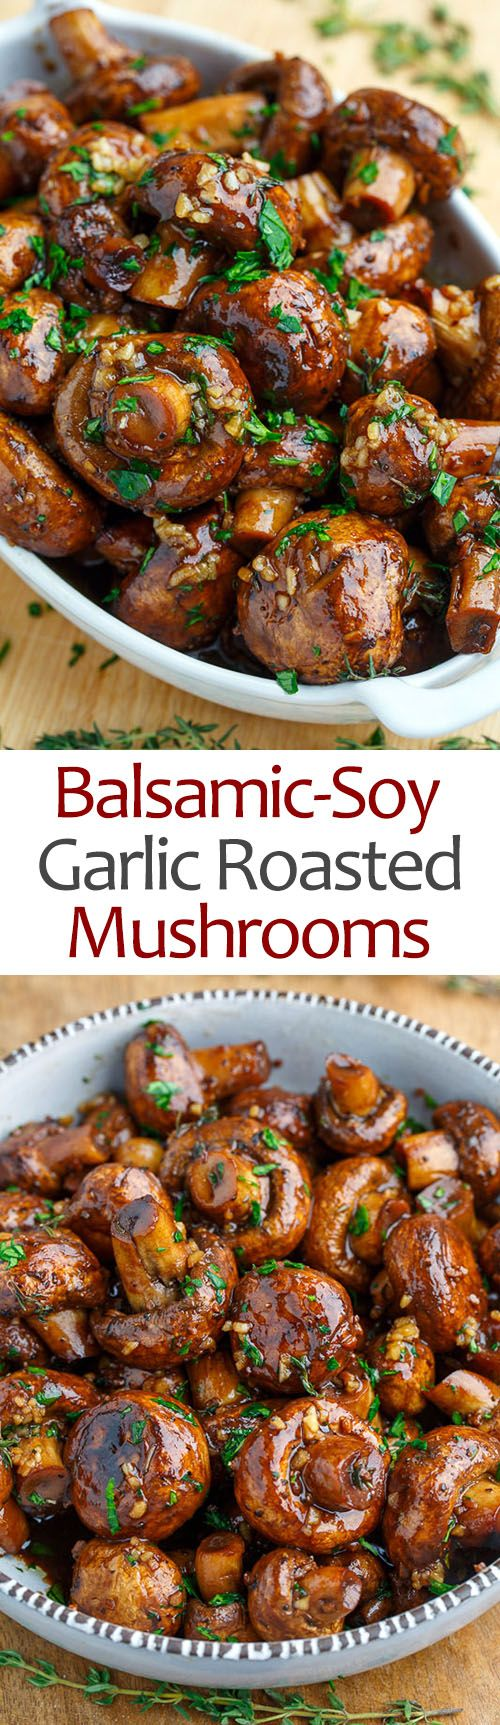 Balsamic Soy Roasted Garlic Mushrooms.